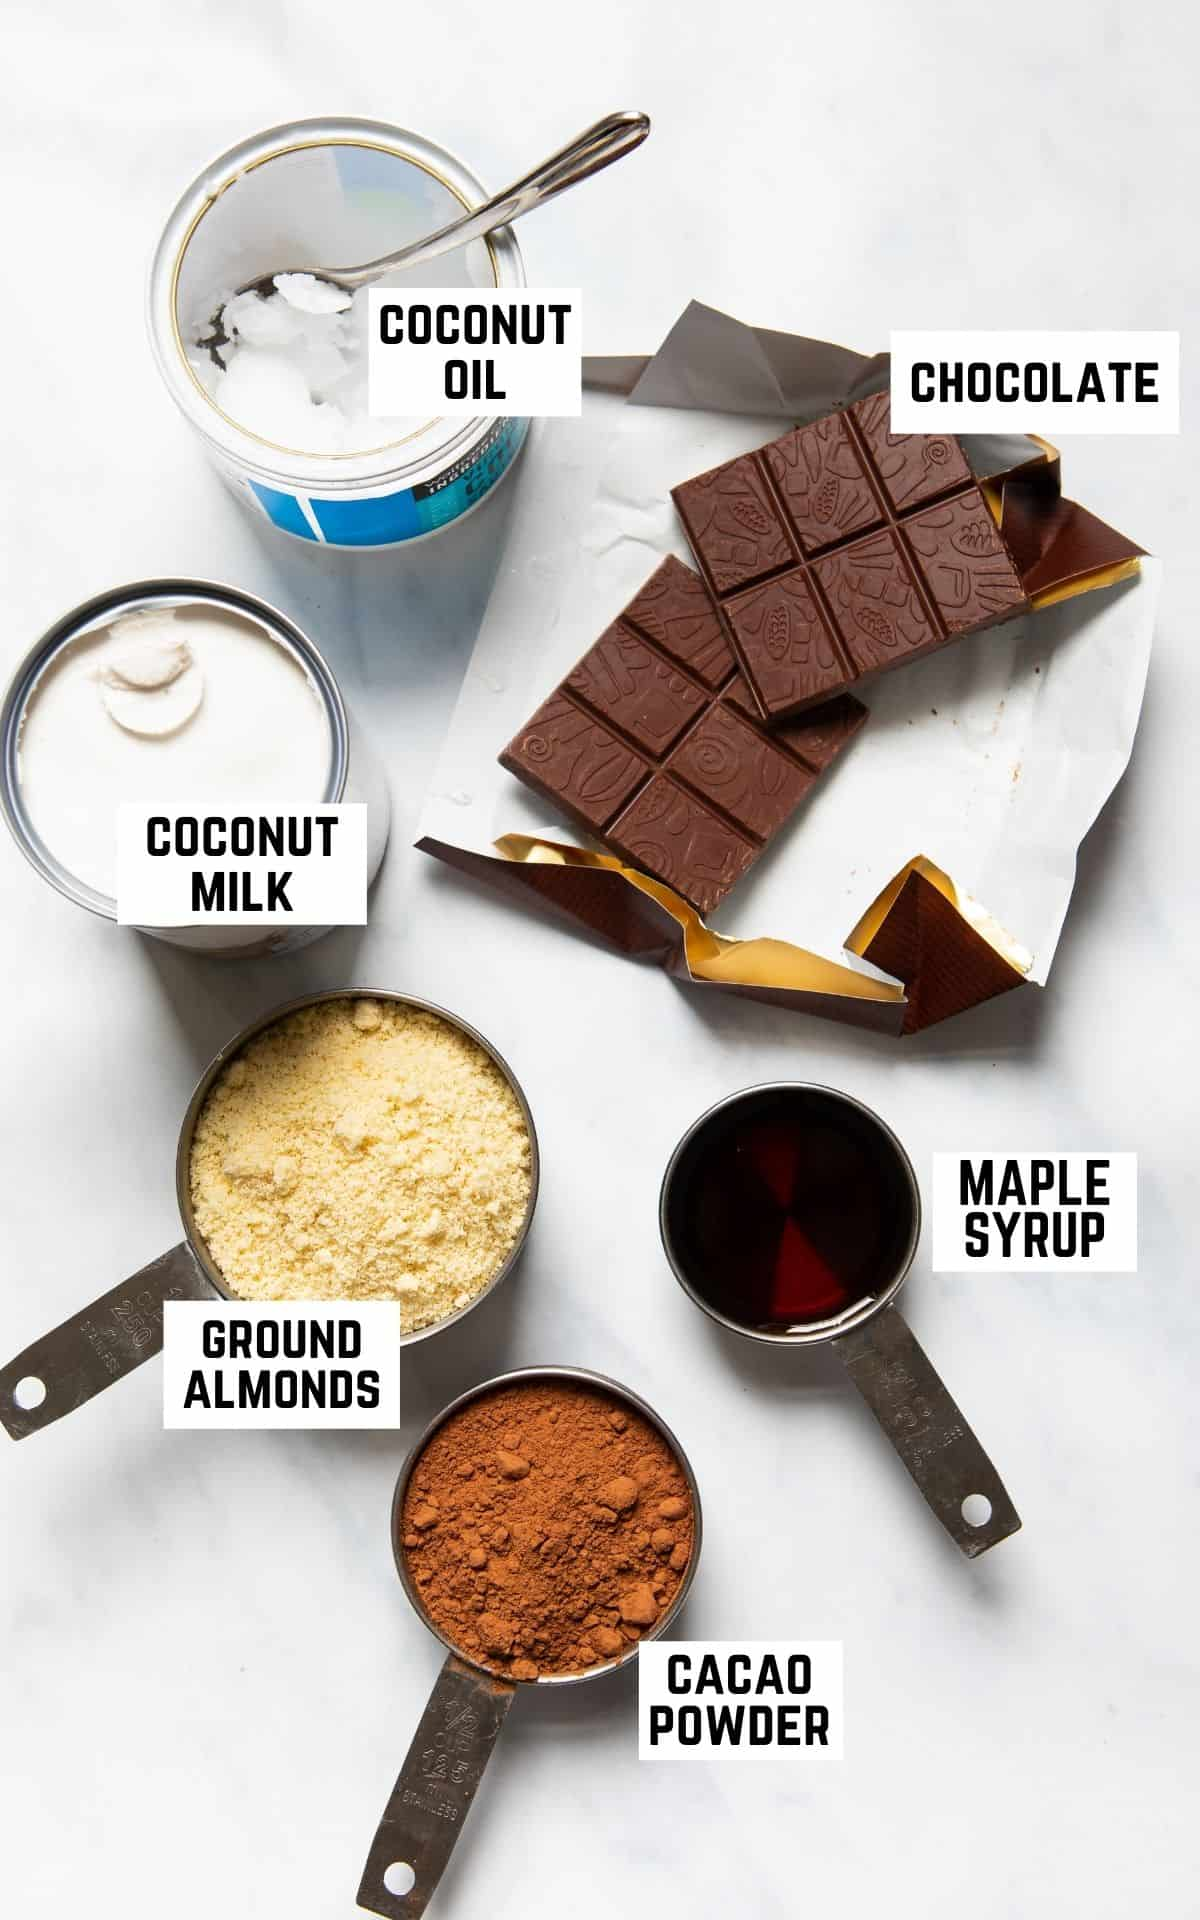 Ingredient flatlay showing coconut oil, chocolate, coconut milk, ground almonds, maple syrup, and cacao powder.